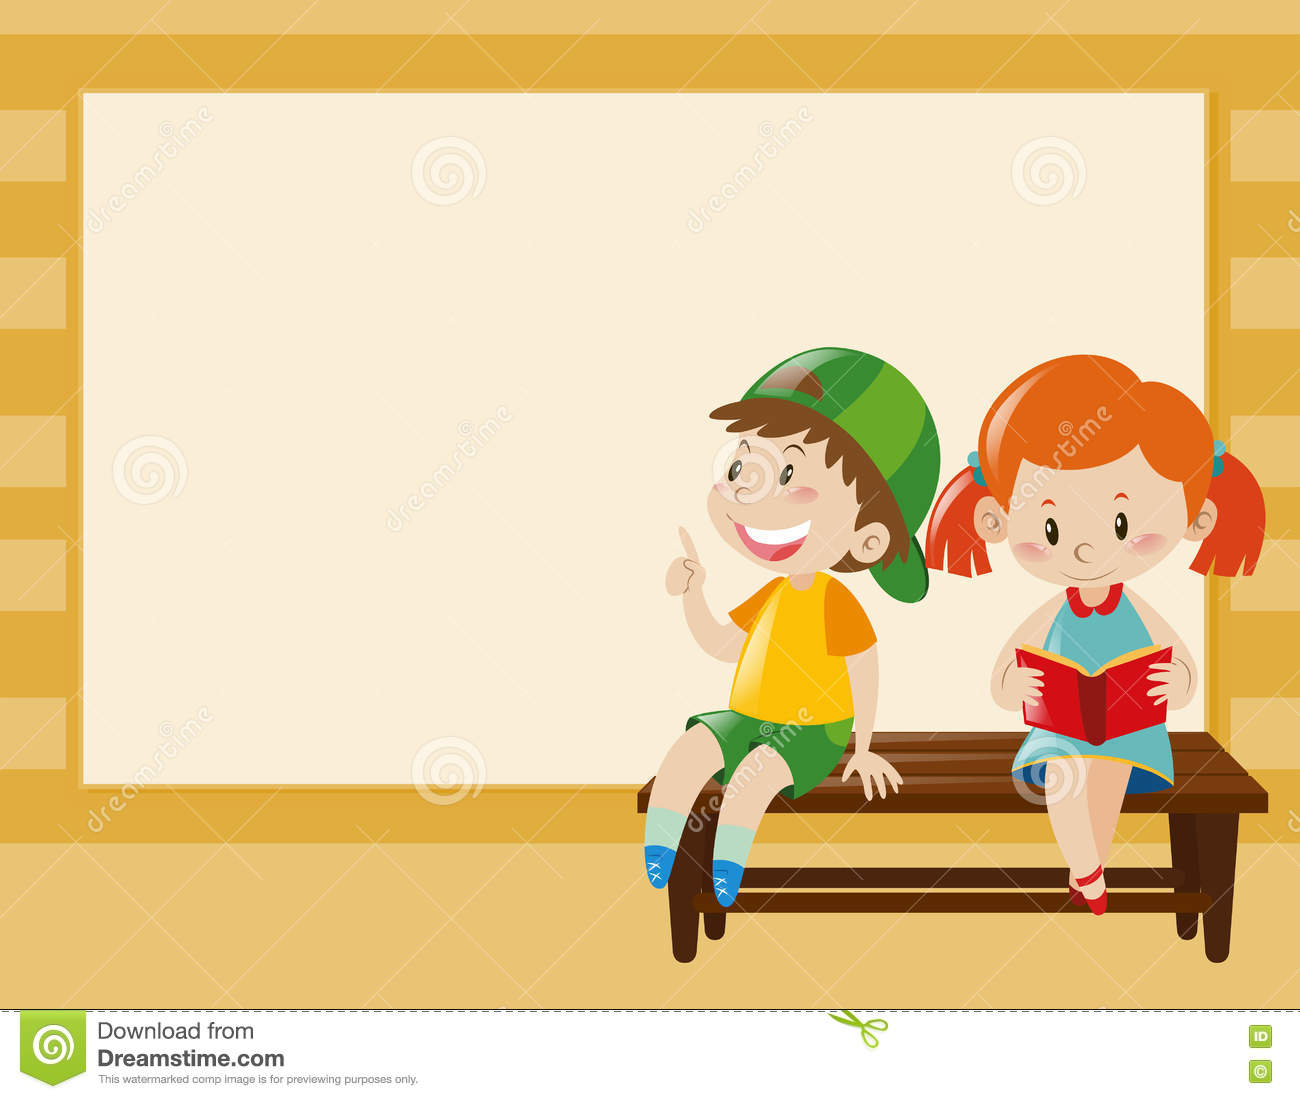 Border Template With Kids On The Bench Stock Illustration